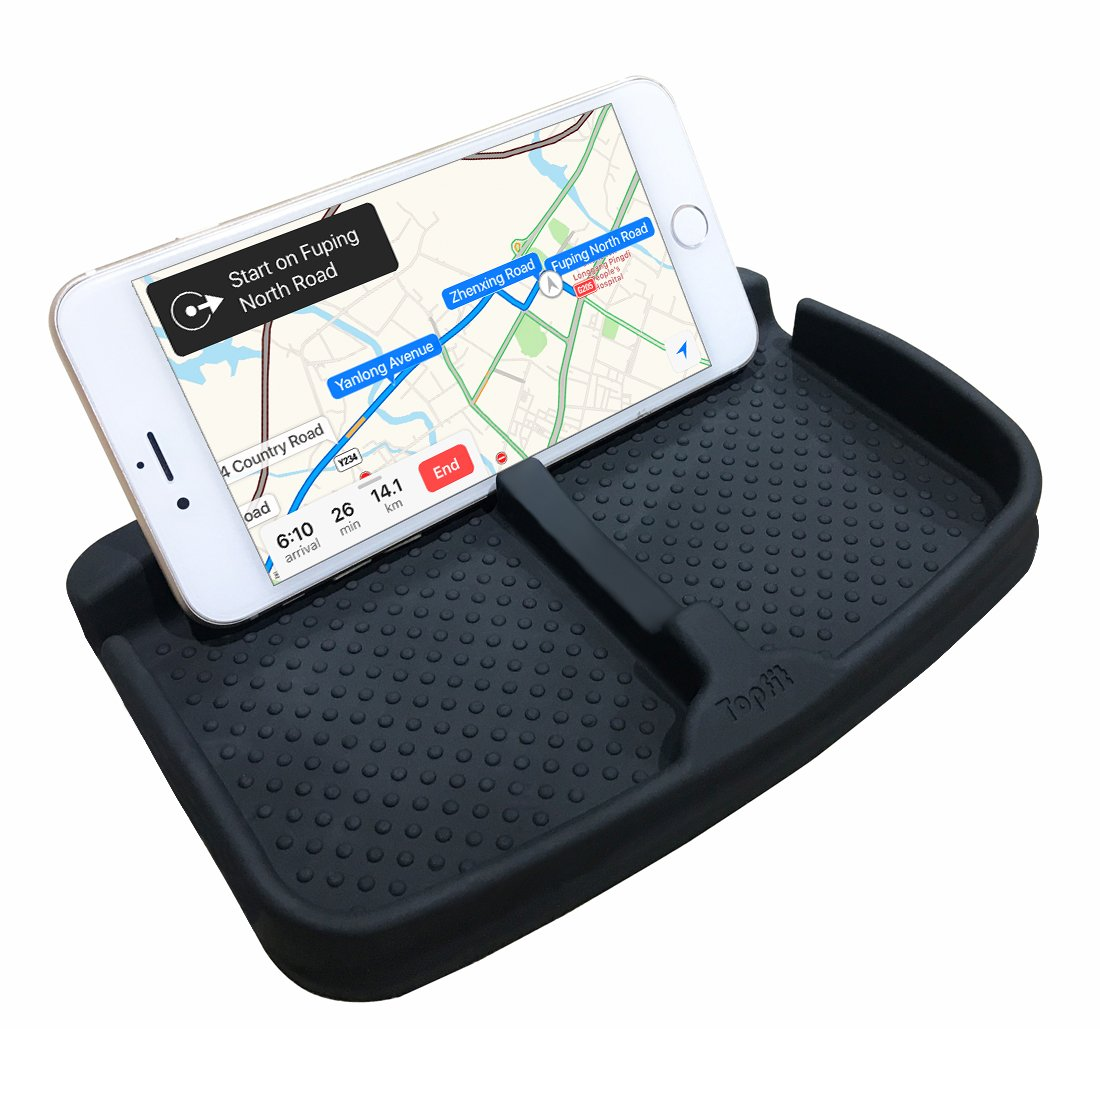 Anti-Slip Cell Phone Pad Universal for Car Dashboard Non-Slide Silicone Rubber Gel Mat Cell Phone Holder for Smartphone X/8/7 Plus Galaxy Note 8 S9 S8 Plus or GPS Devices Sunglasses Cards Coins by BMZX